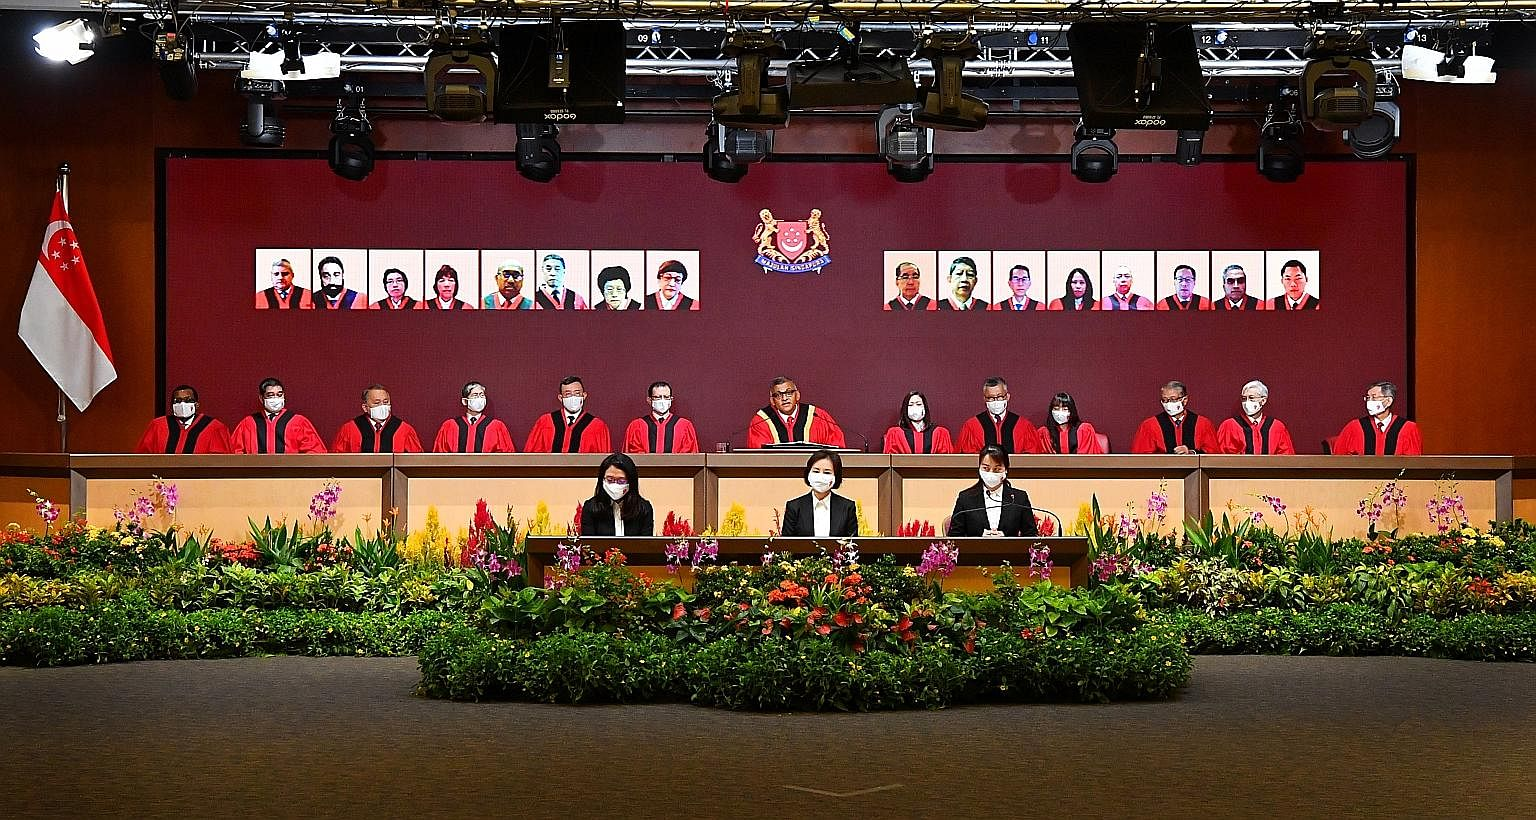 Chief Justice Sundaresh Menon (centre) delivering a speech to mark the opening of the legal year. The event was conducted virtually for the first time, with the proceedings live-streamed to about 1,000 participants.